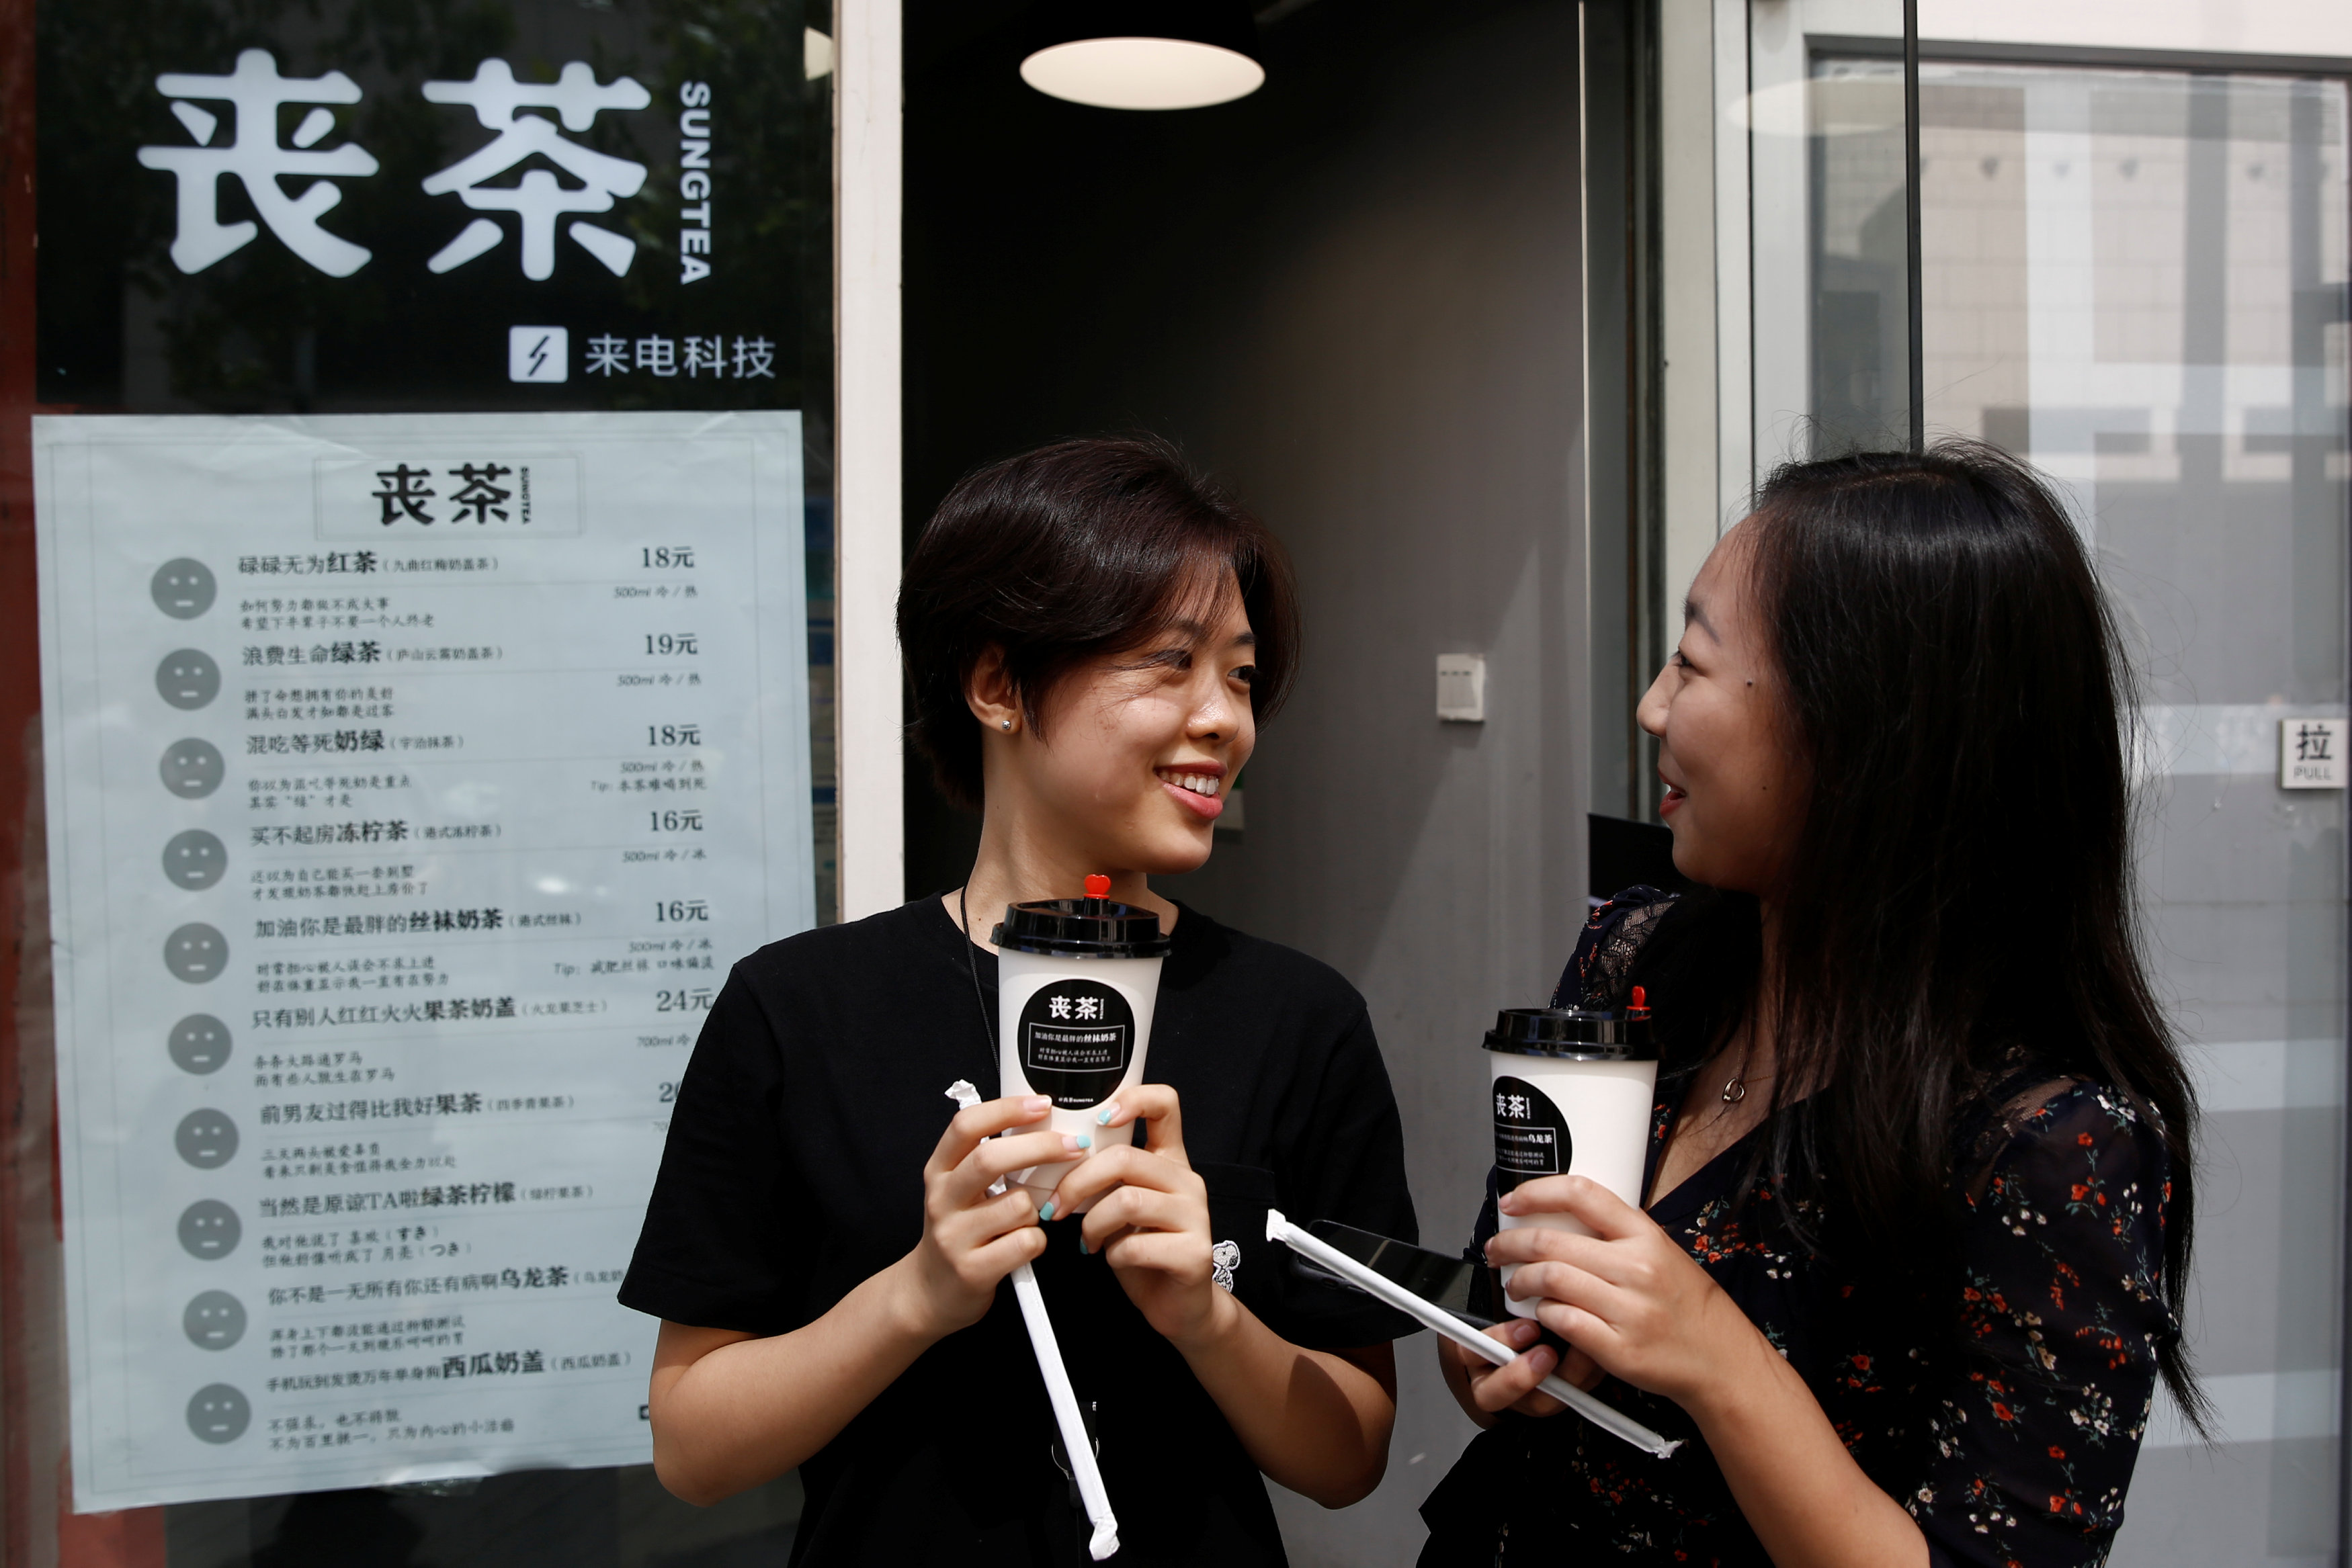 'Sang' Culture and Growing Despondency Among Chinese Millennials